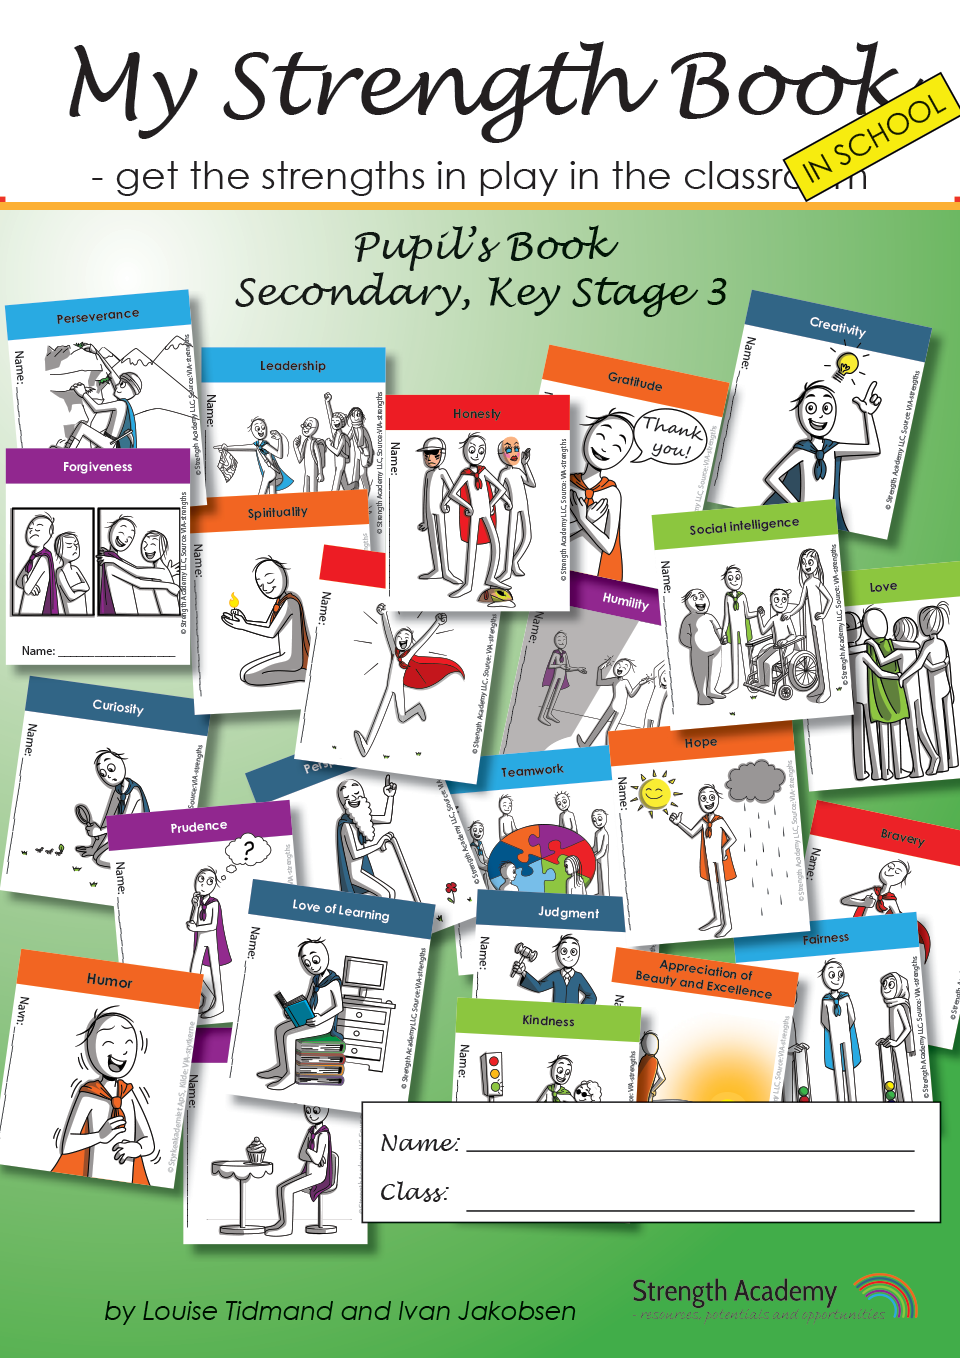 My Strength Book, get strengths in play in the classroom, KS3, workbook